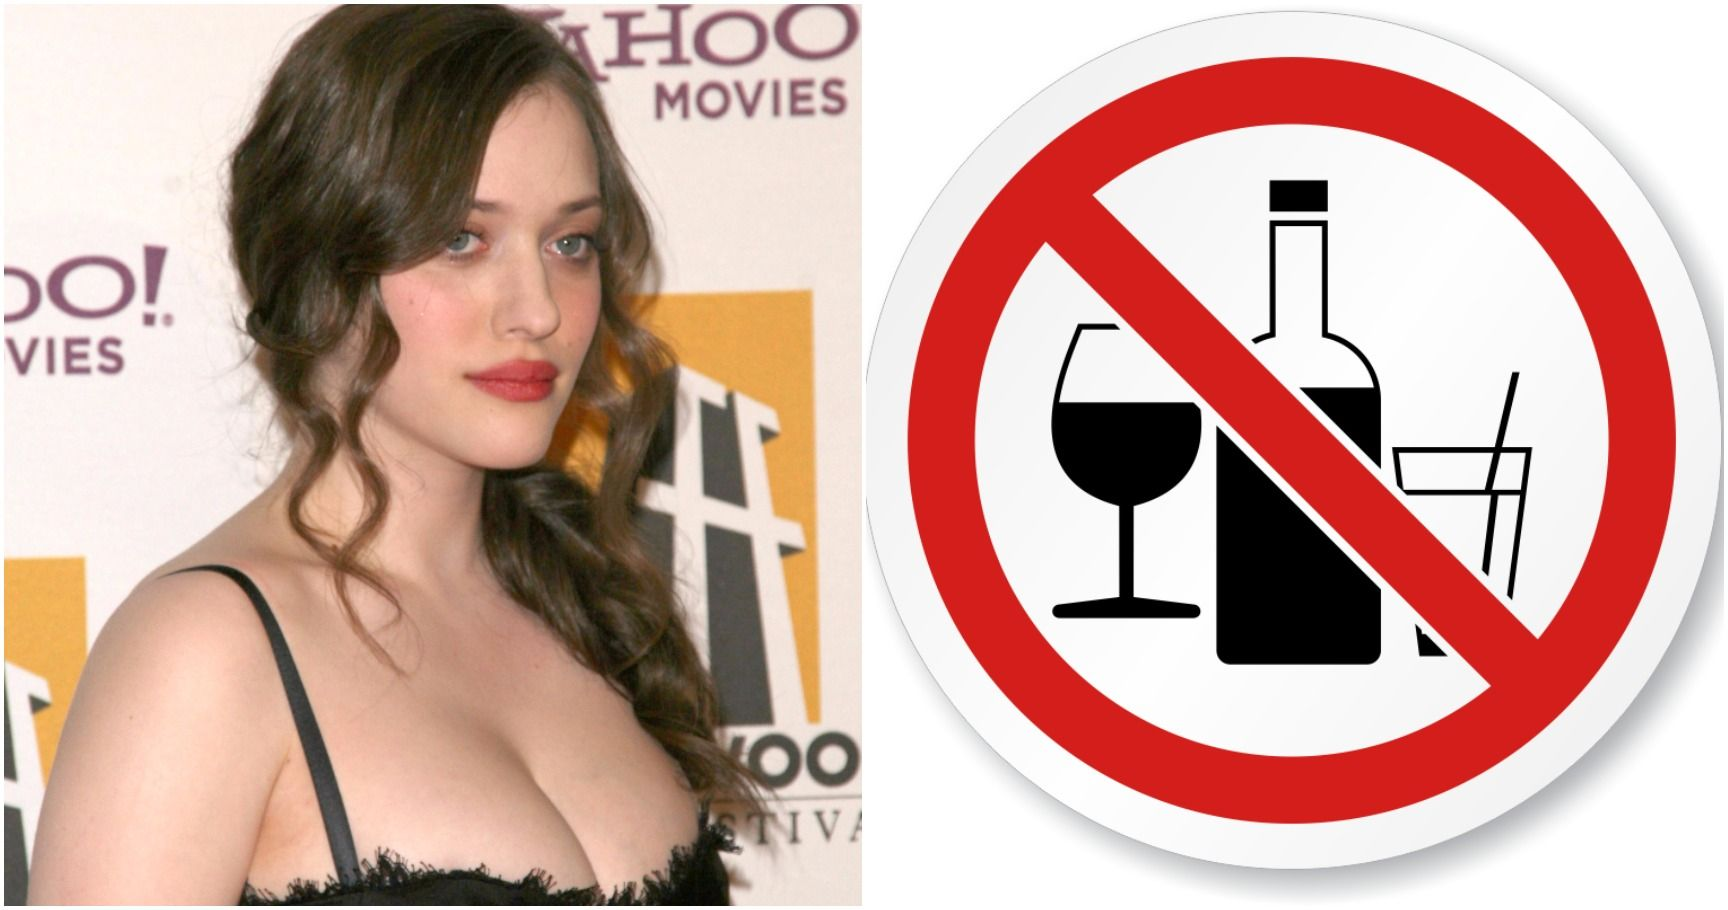 15 Interesting Things You Didn't Know About Kat Dennings